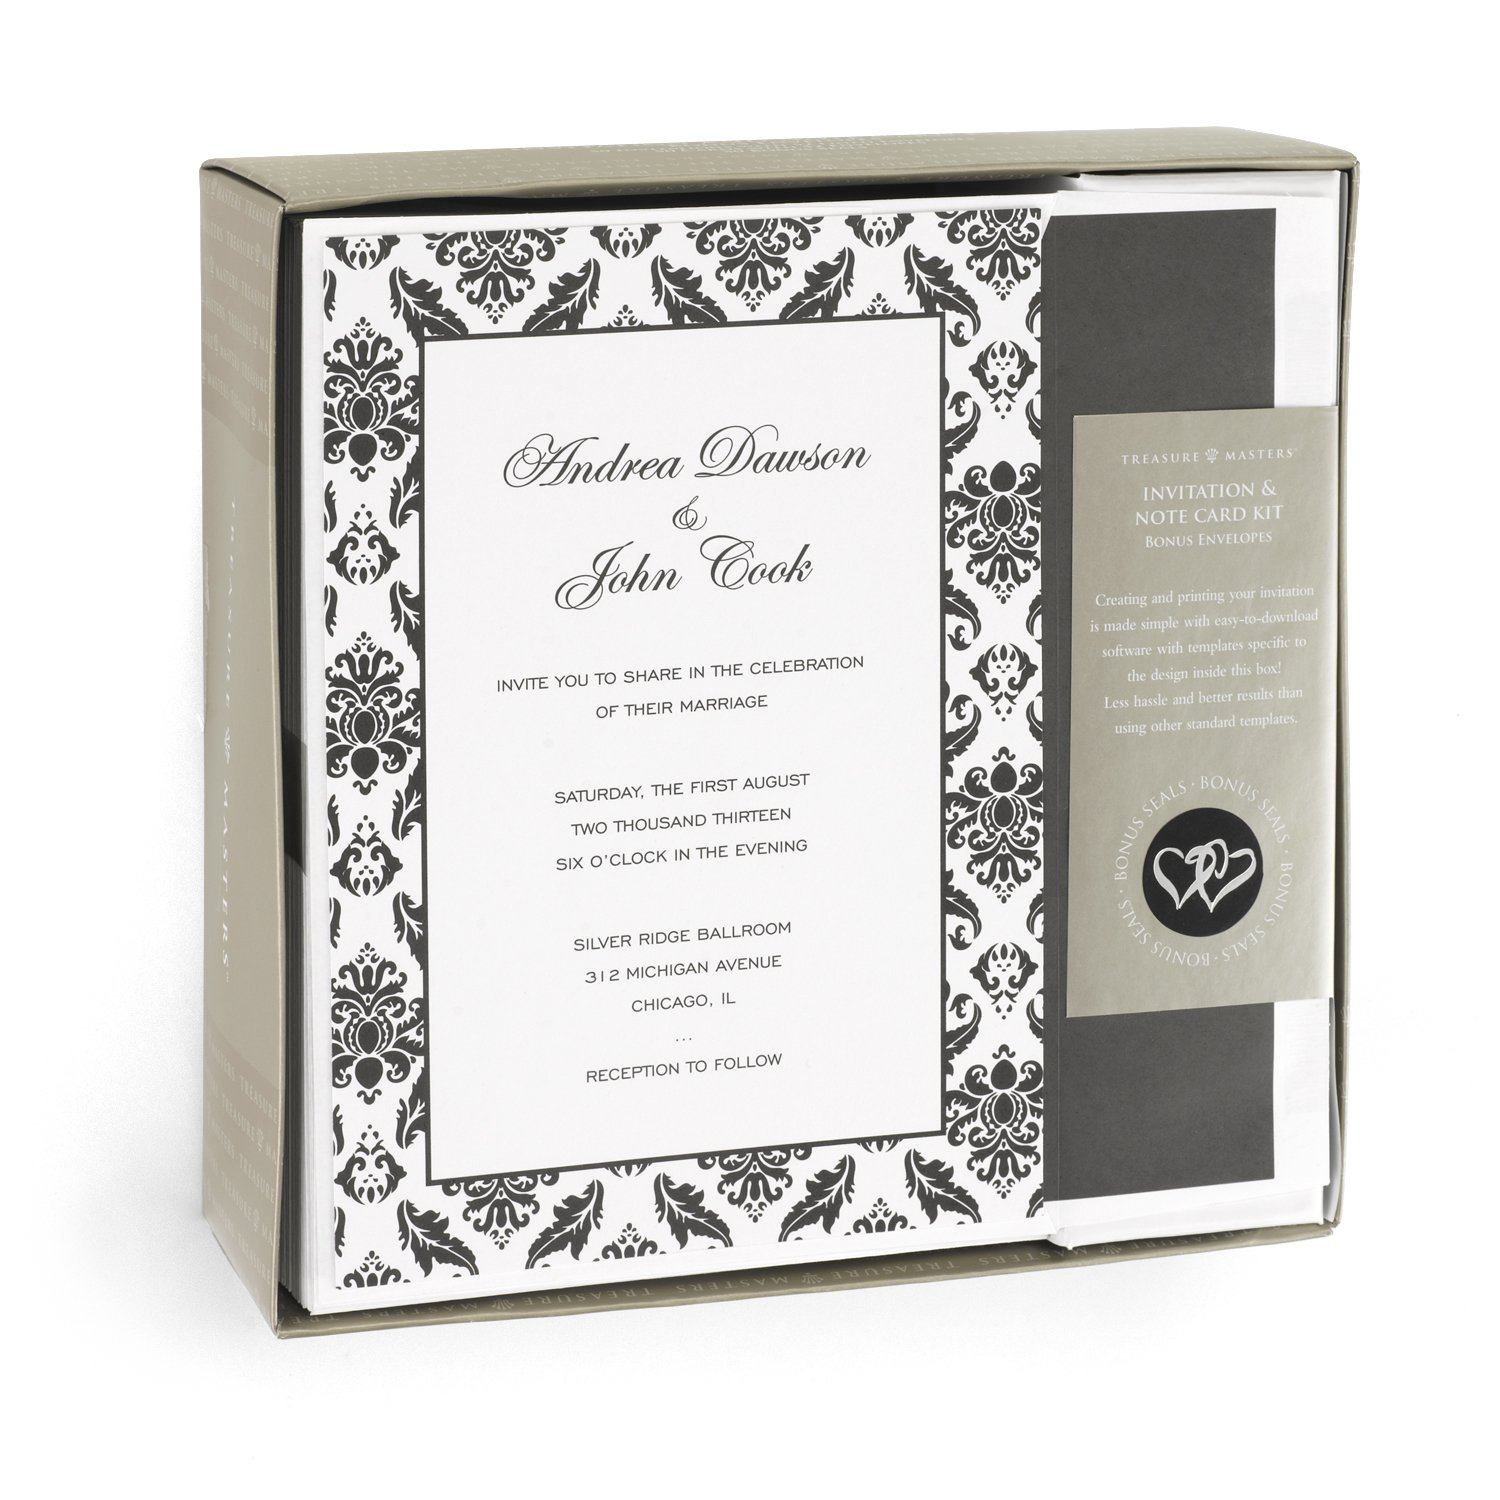 Amazon.com: Hortense B. Hewitt Wedding Accessories Print Yourself Invitation  Kit, Damask Border, Pack Of 50: Home U0026 Kitchen